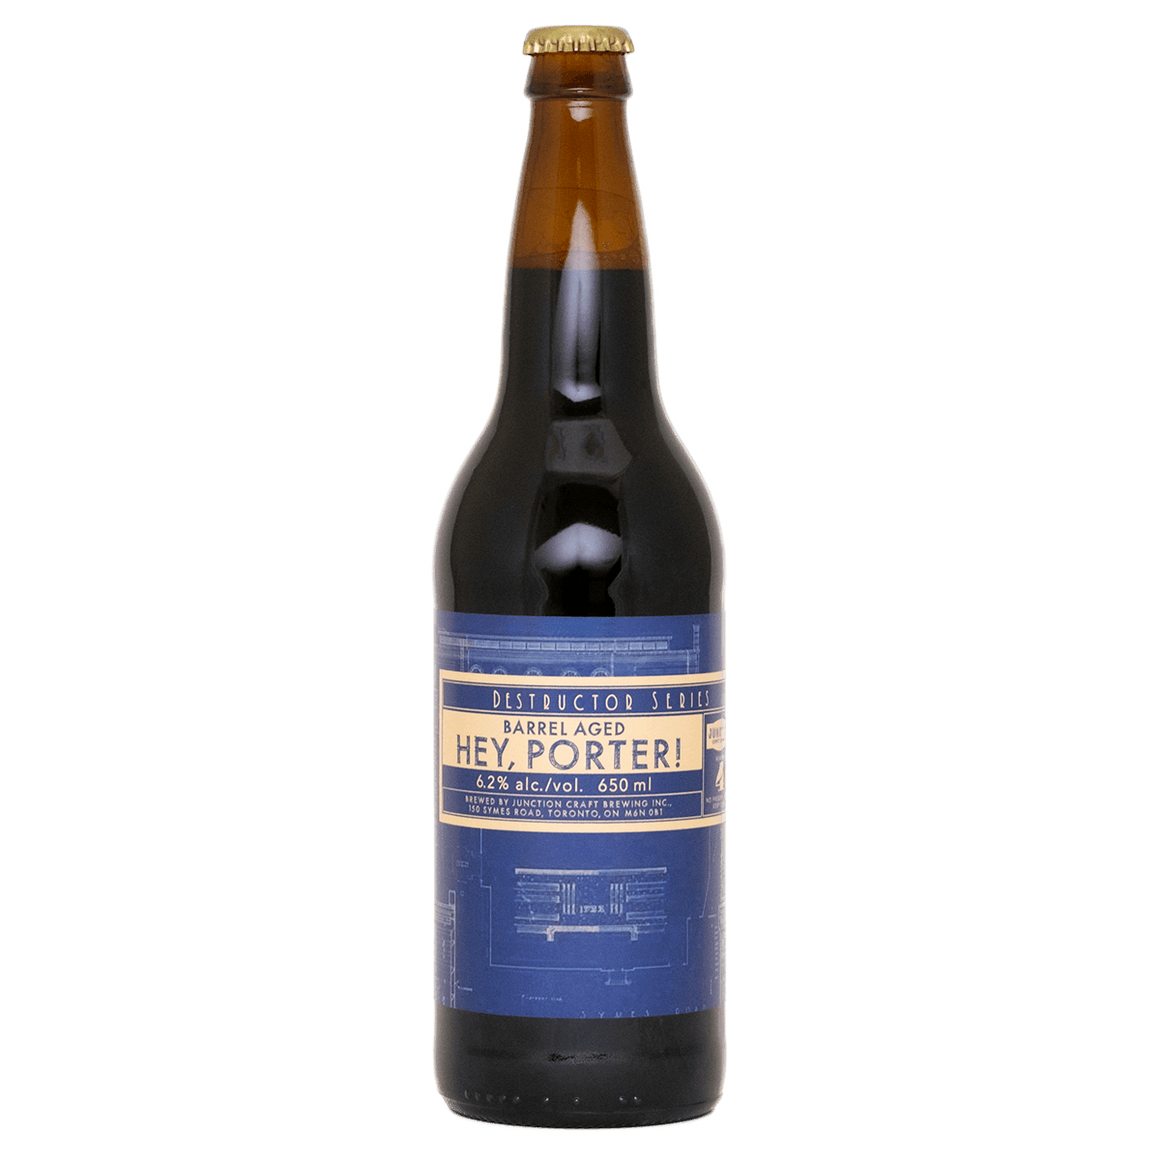 Barrel Aged Hey, Porter! - Barrel Aged Porter